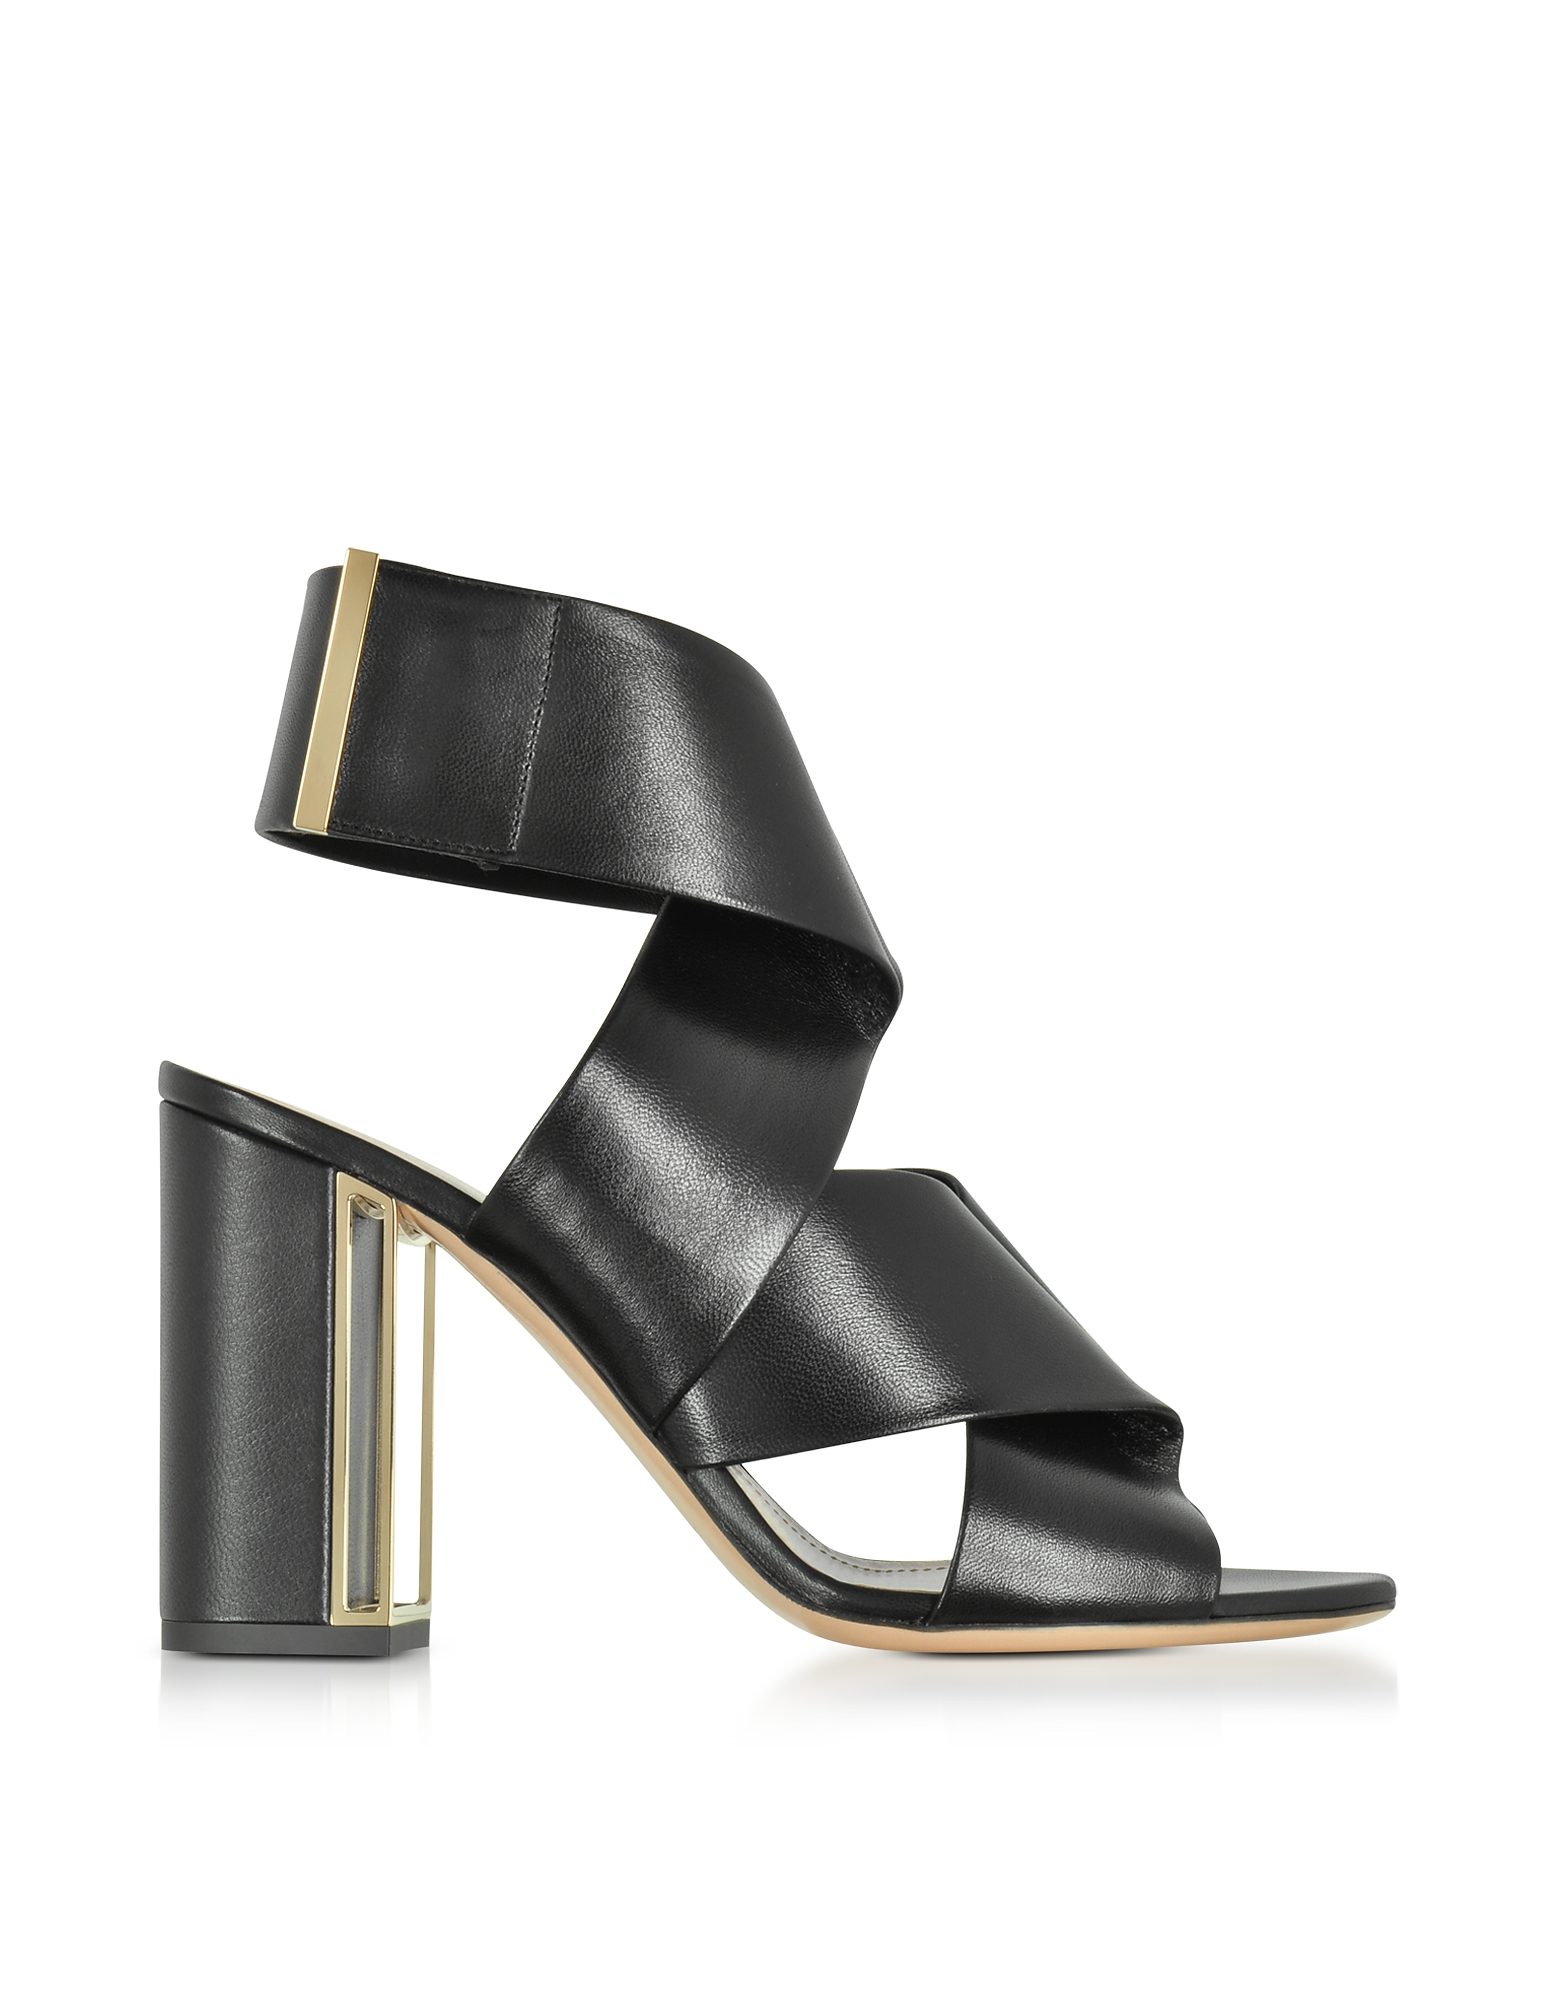 Nicholas Kirkwood Shoes, Black Nappa Leather Nini Sandals